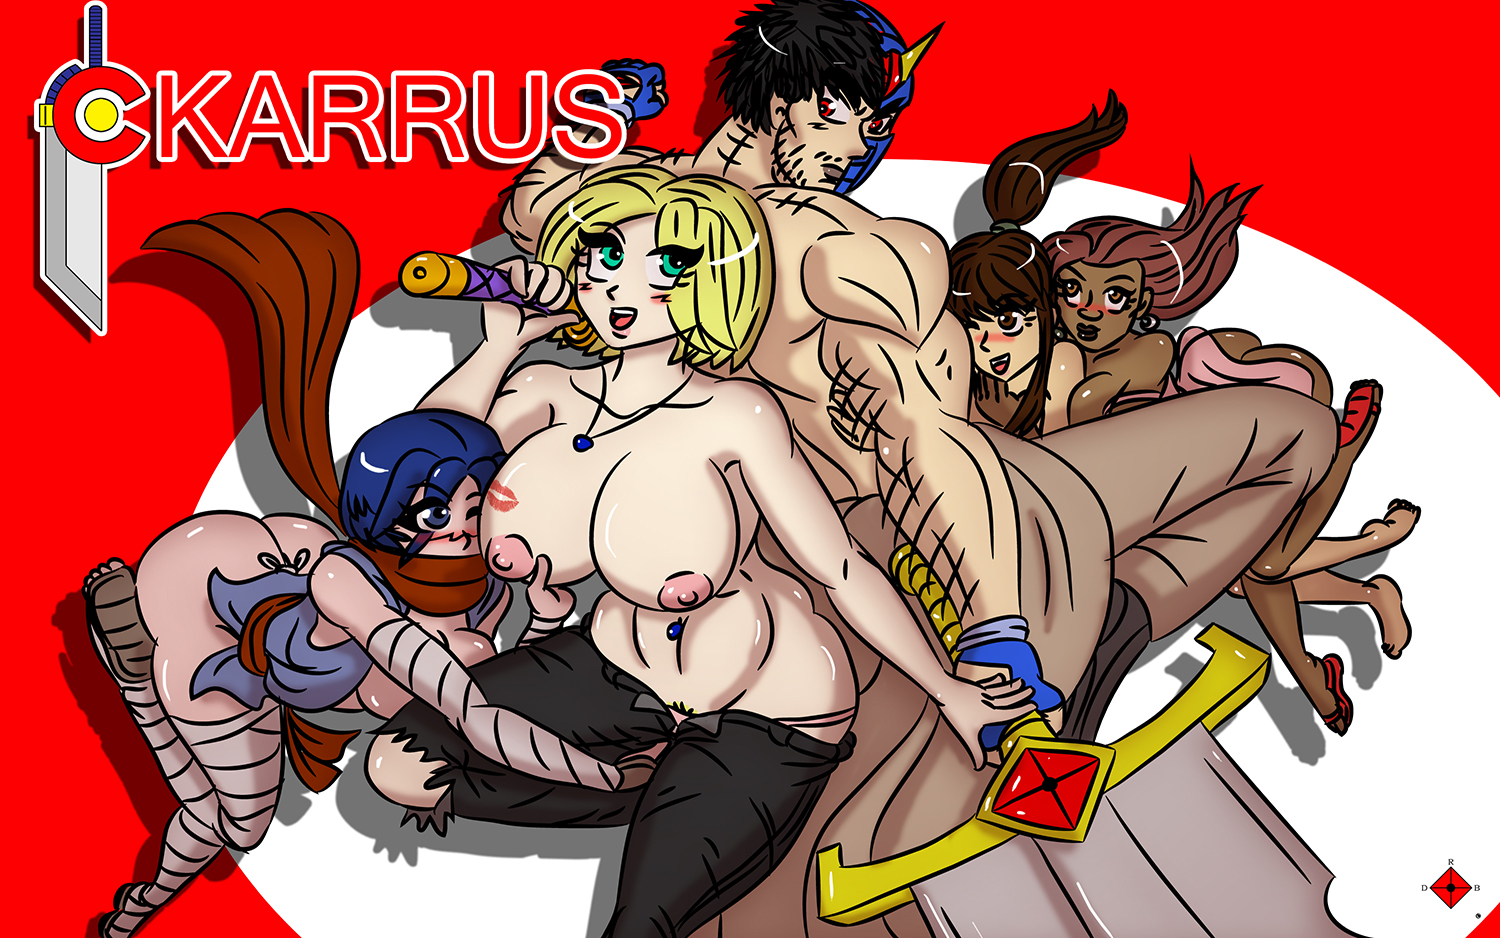 Series Cover 1 (Uncensored)